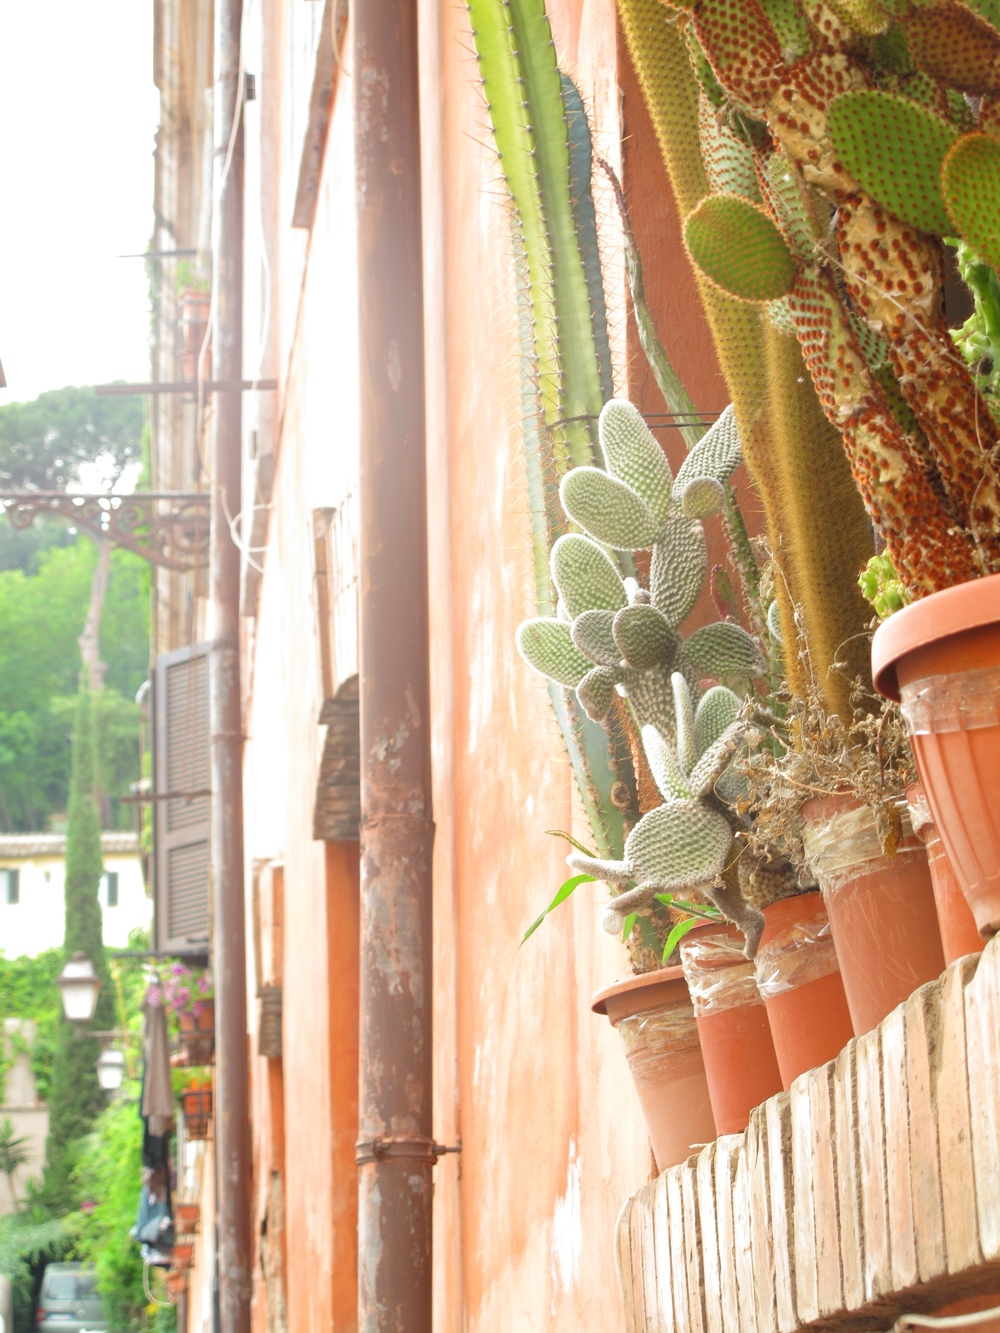 Cacti on a terracotta windowsill in Rome